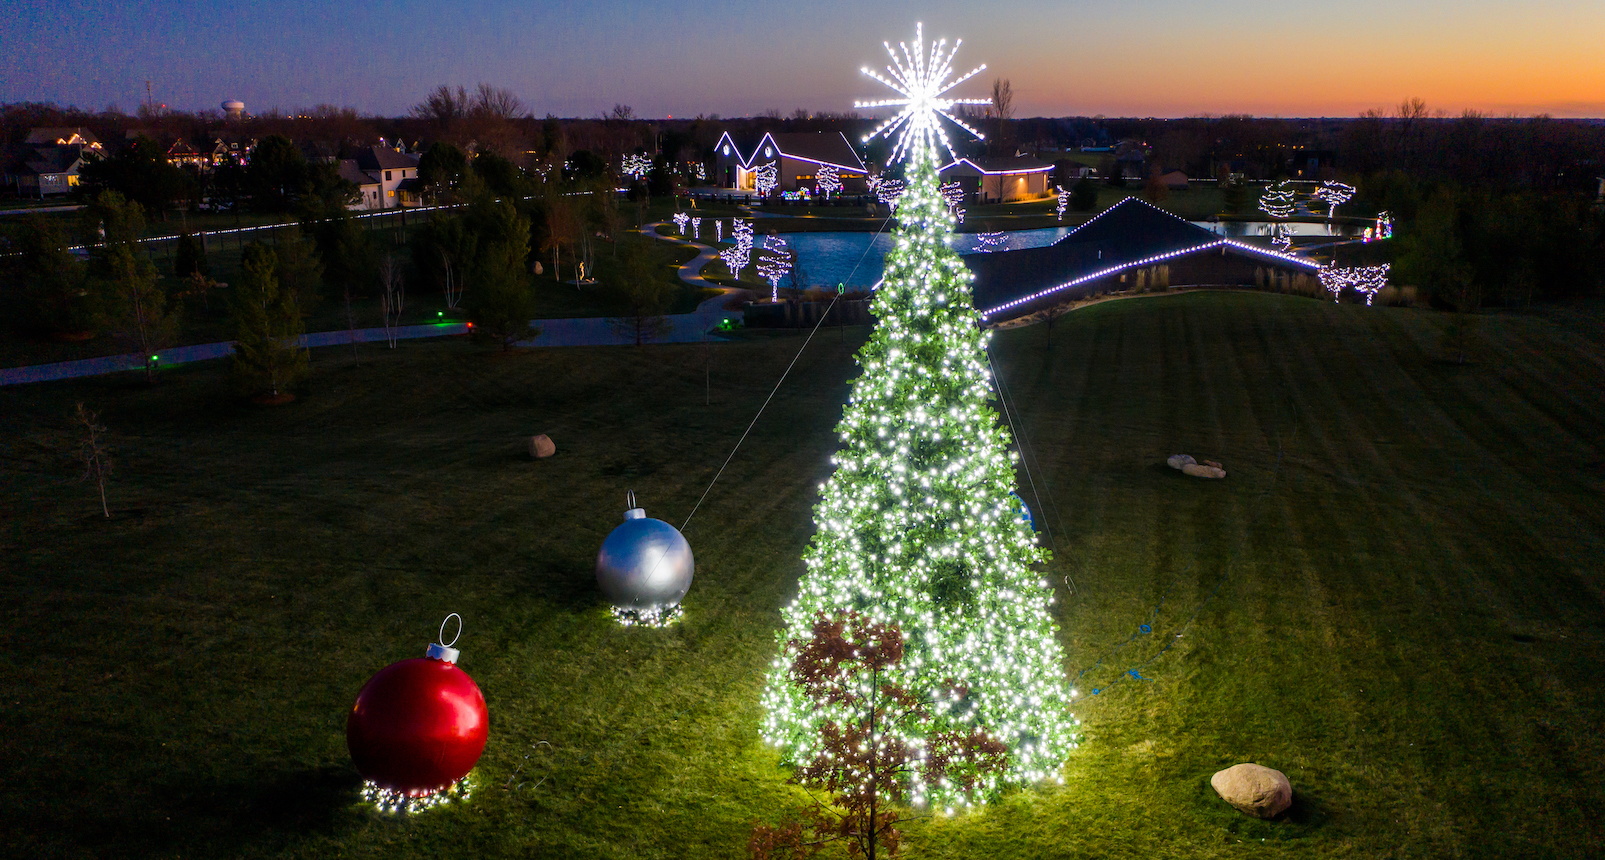 Perficut holiday lighting display at Moyer home in Ankeny, Iowa